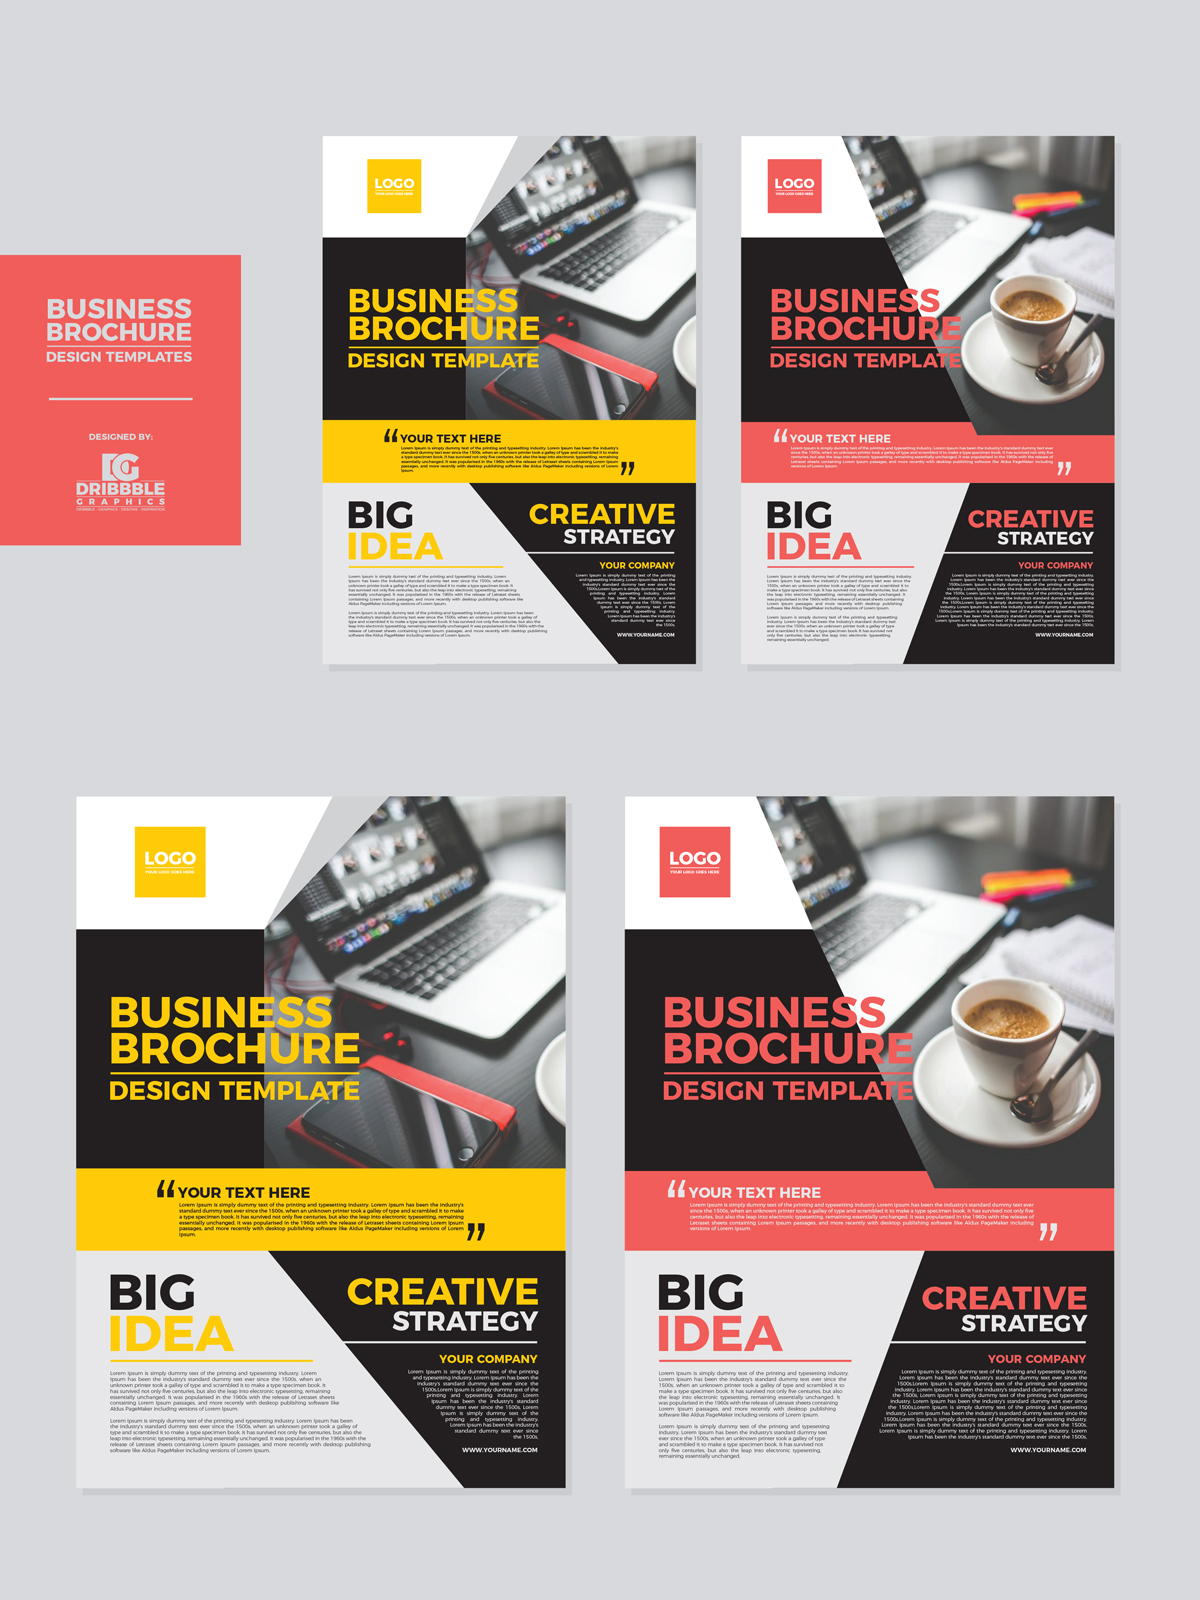 free business brochures templates - free business brochure design templates dribbble graphics